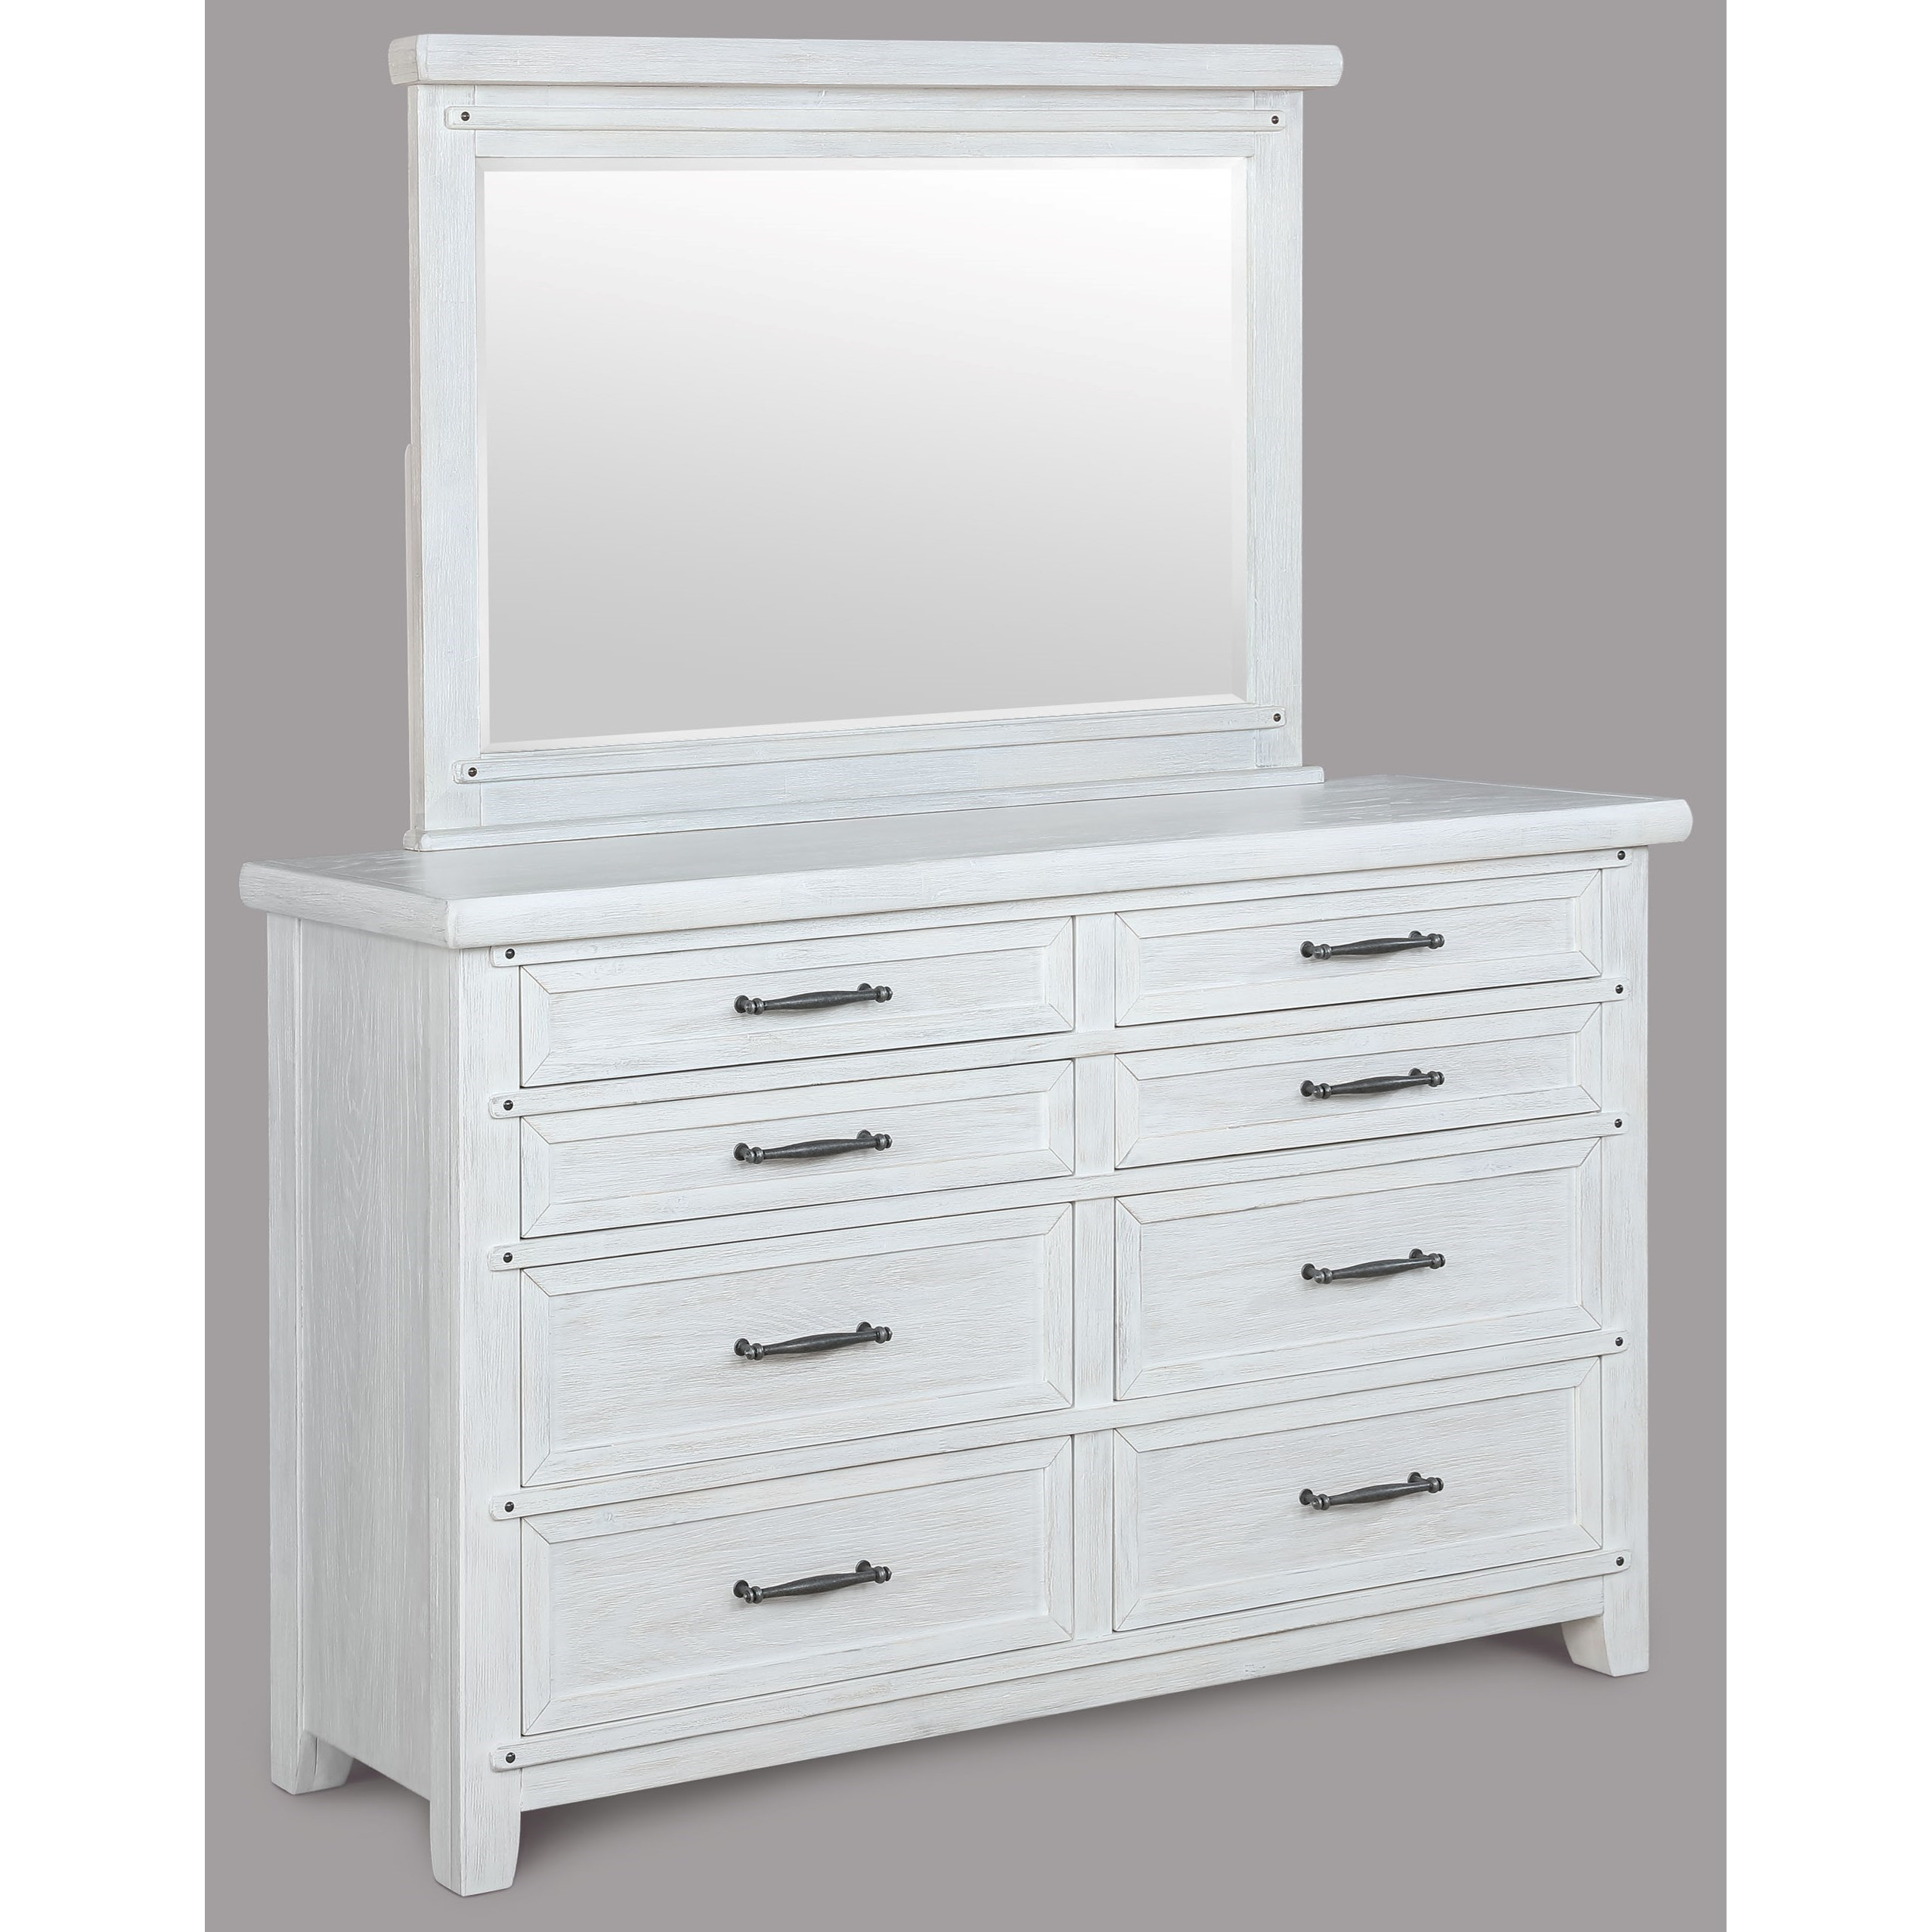 Mirror Set With Metal Drawer Pulls